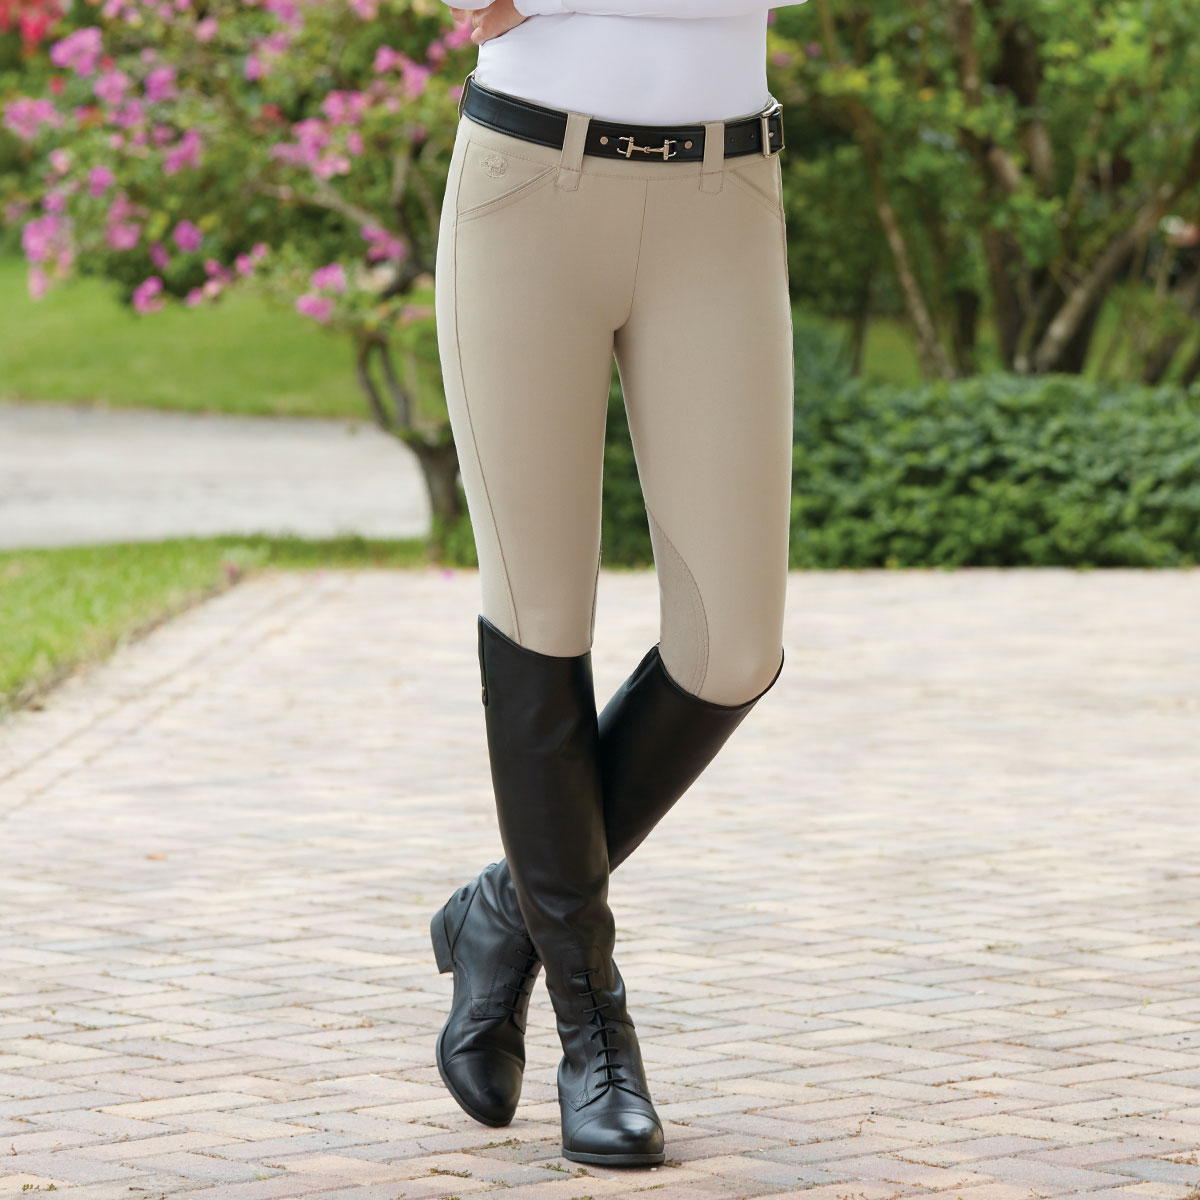 Piper Breeches by SmartPak - Show Side Zip Knee Patch